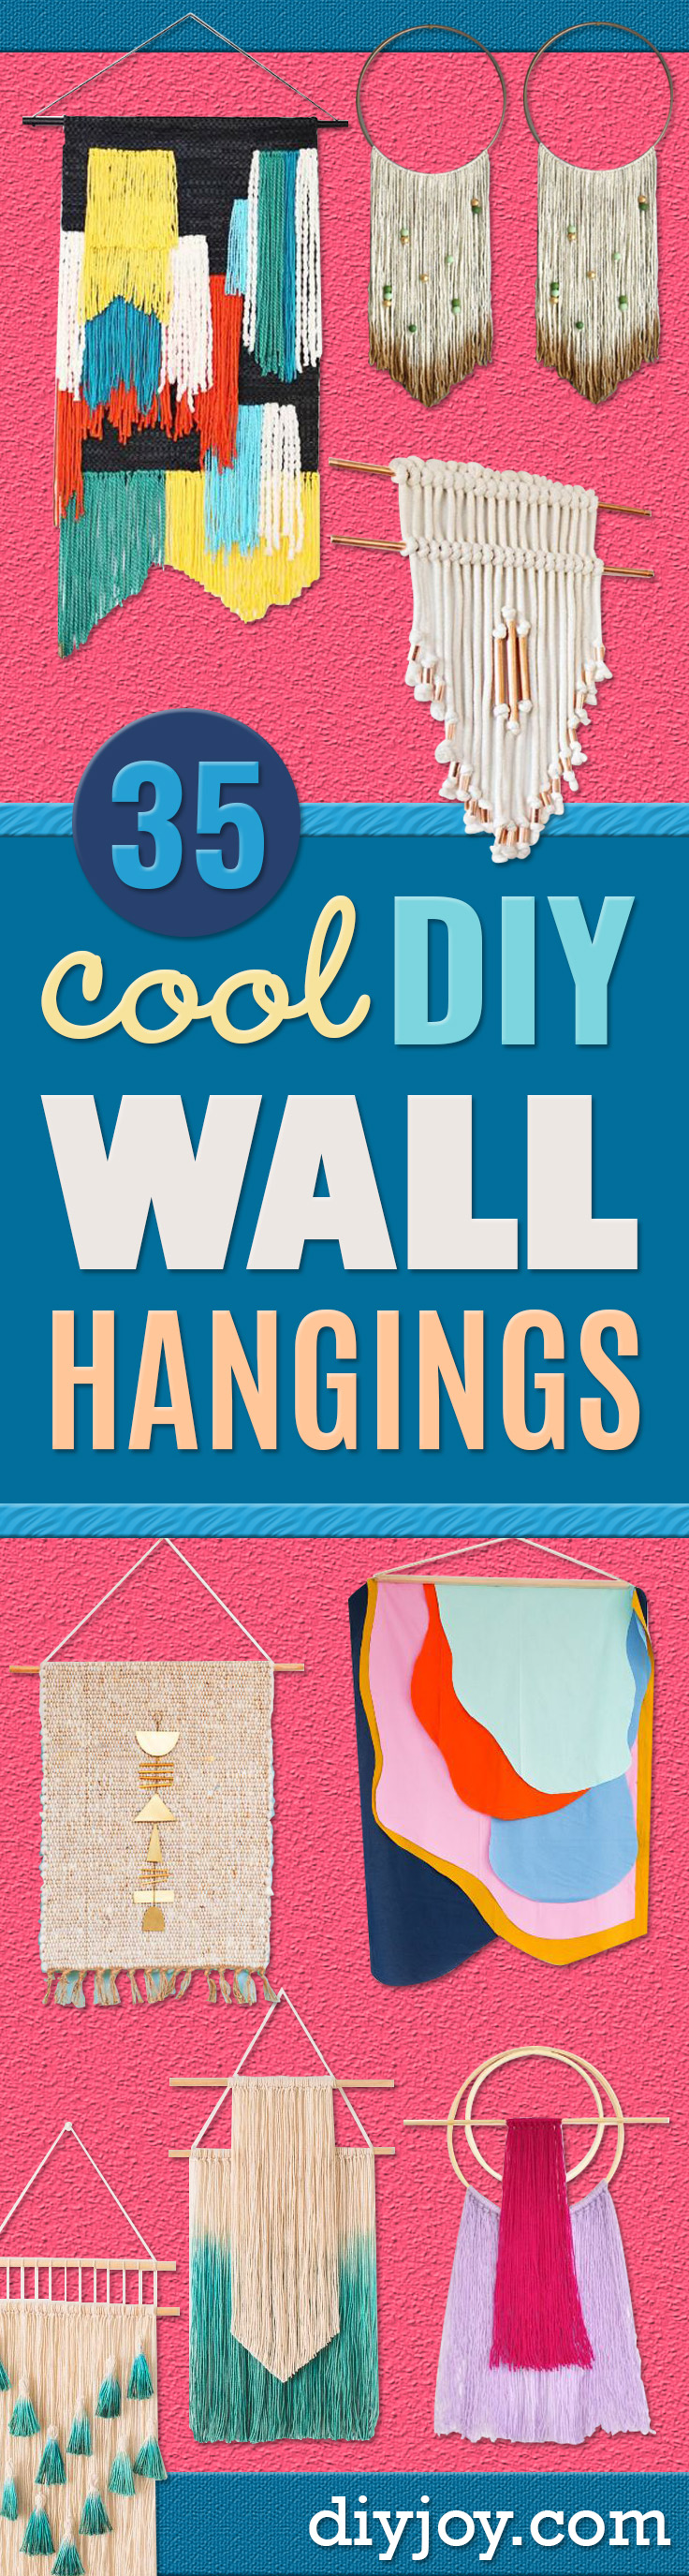 DIY Wall Hangings - Easy Yarn Projects , Macrame Ideas , Fabric Tapestry and Paper Arts and Crafts , Planter and Wood Board Ideas for Bedroom and Living Room Decor - Cute Mobile and Wall Hanging for Nursery and Kids Rooms